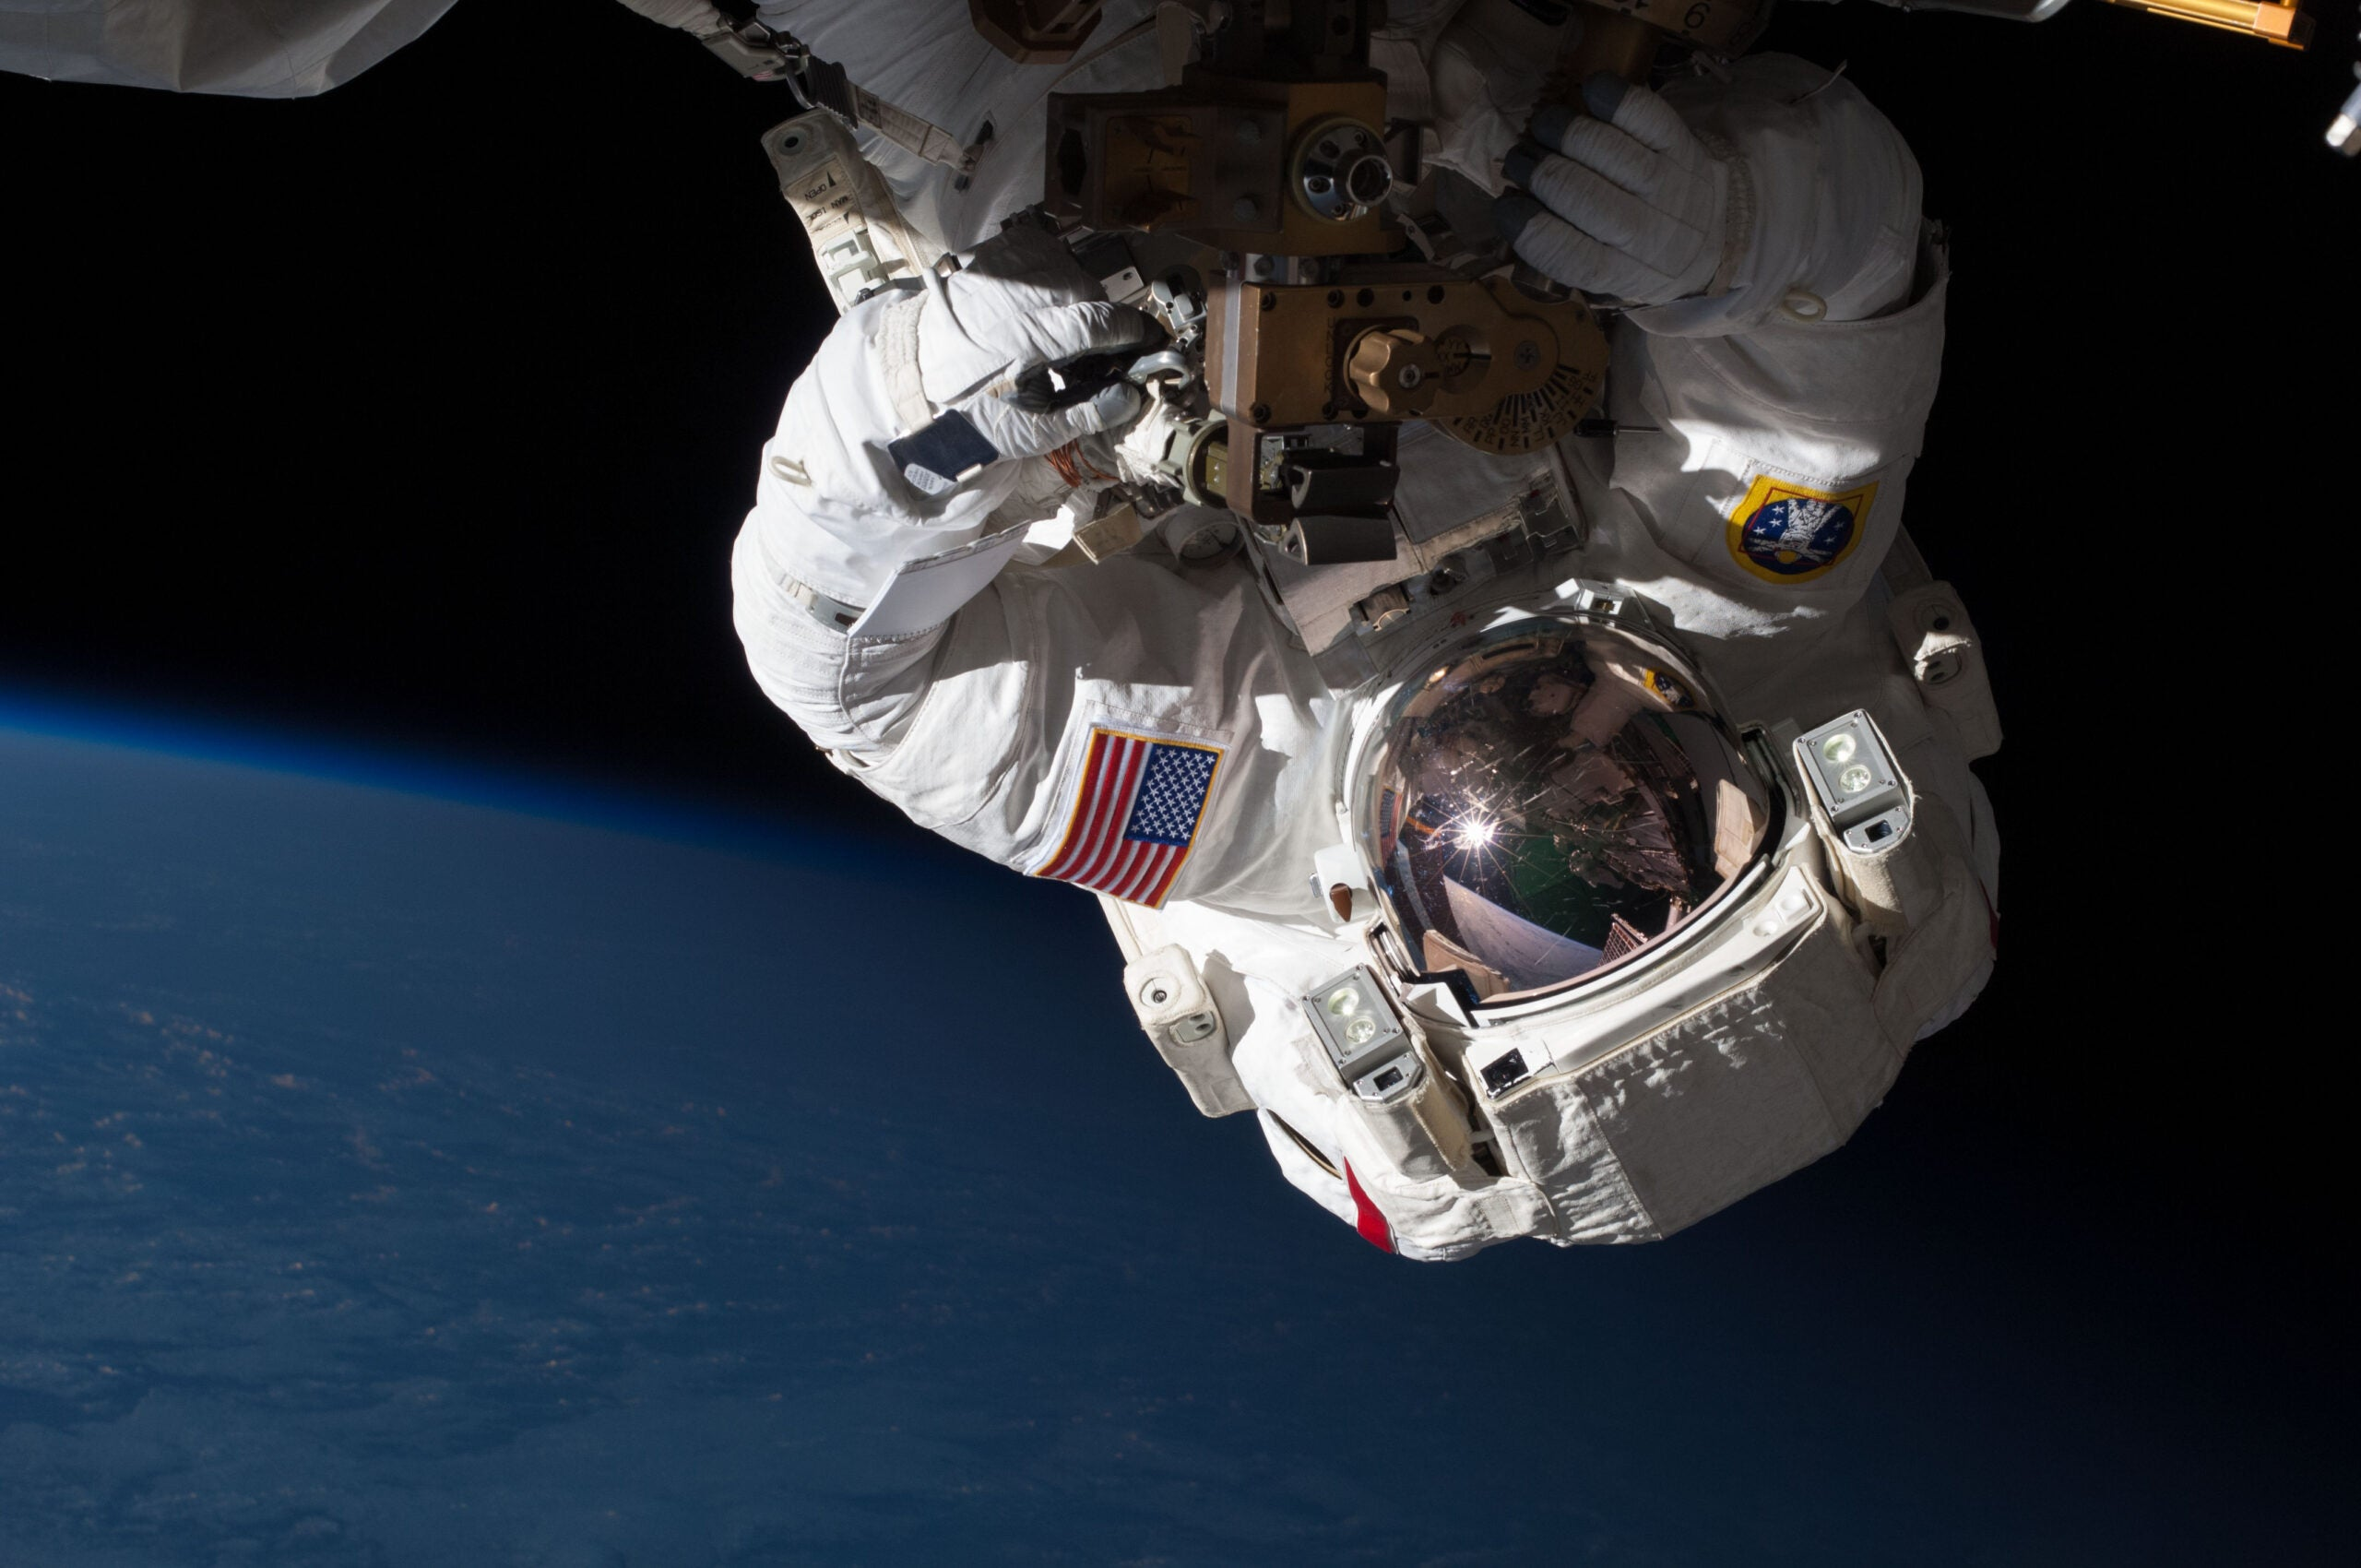 Why Is NASA Looking To Hire More Astronauts?